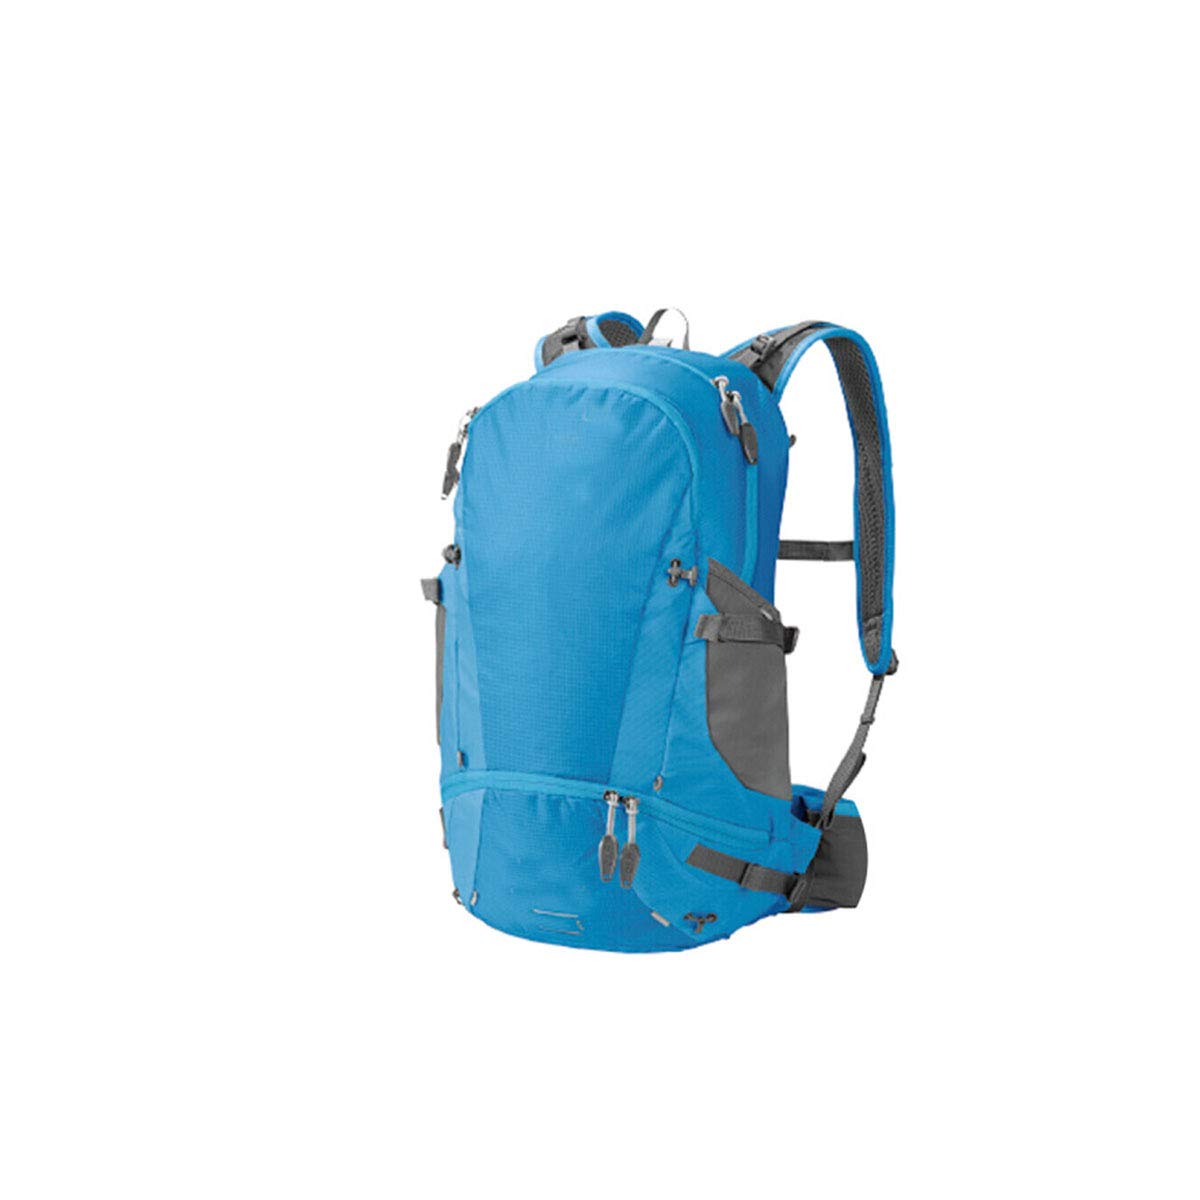 Chenjinxiang Casual Ultra Lightweight Comfortable Travel Backpack, Blue (Color : Blue) by Chenjinxiang (Image #1)